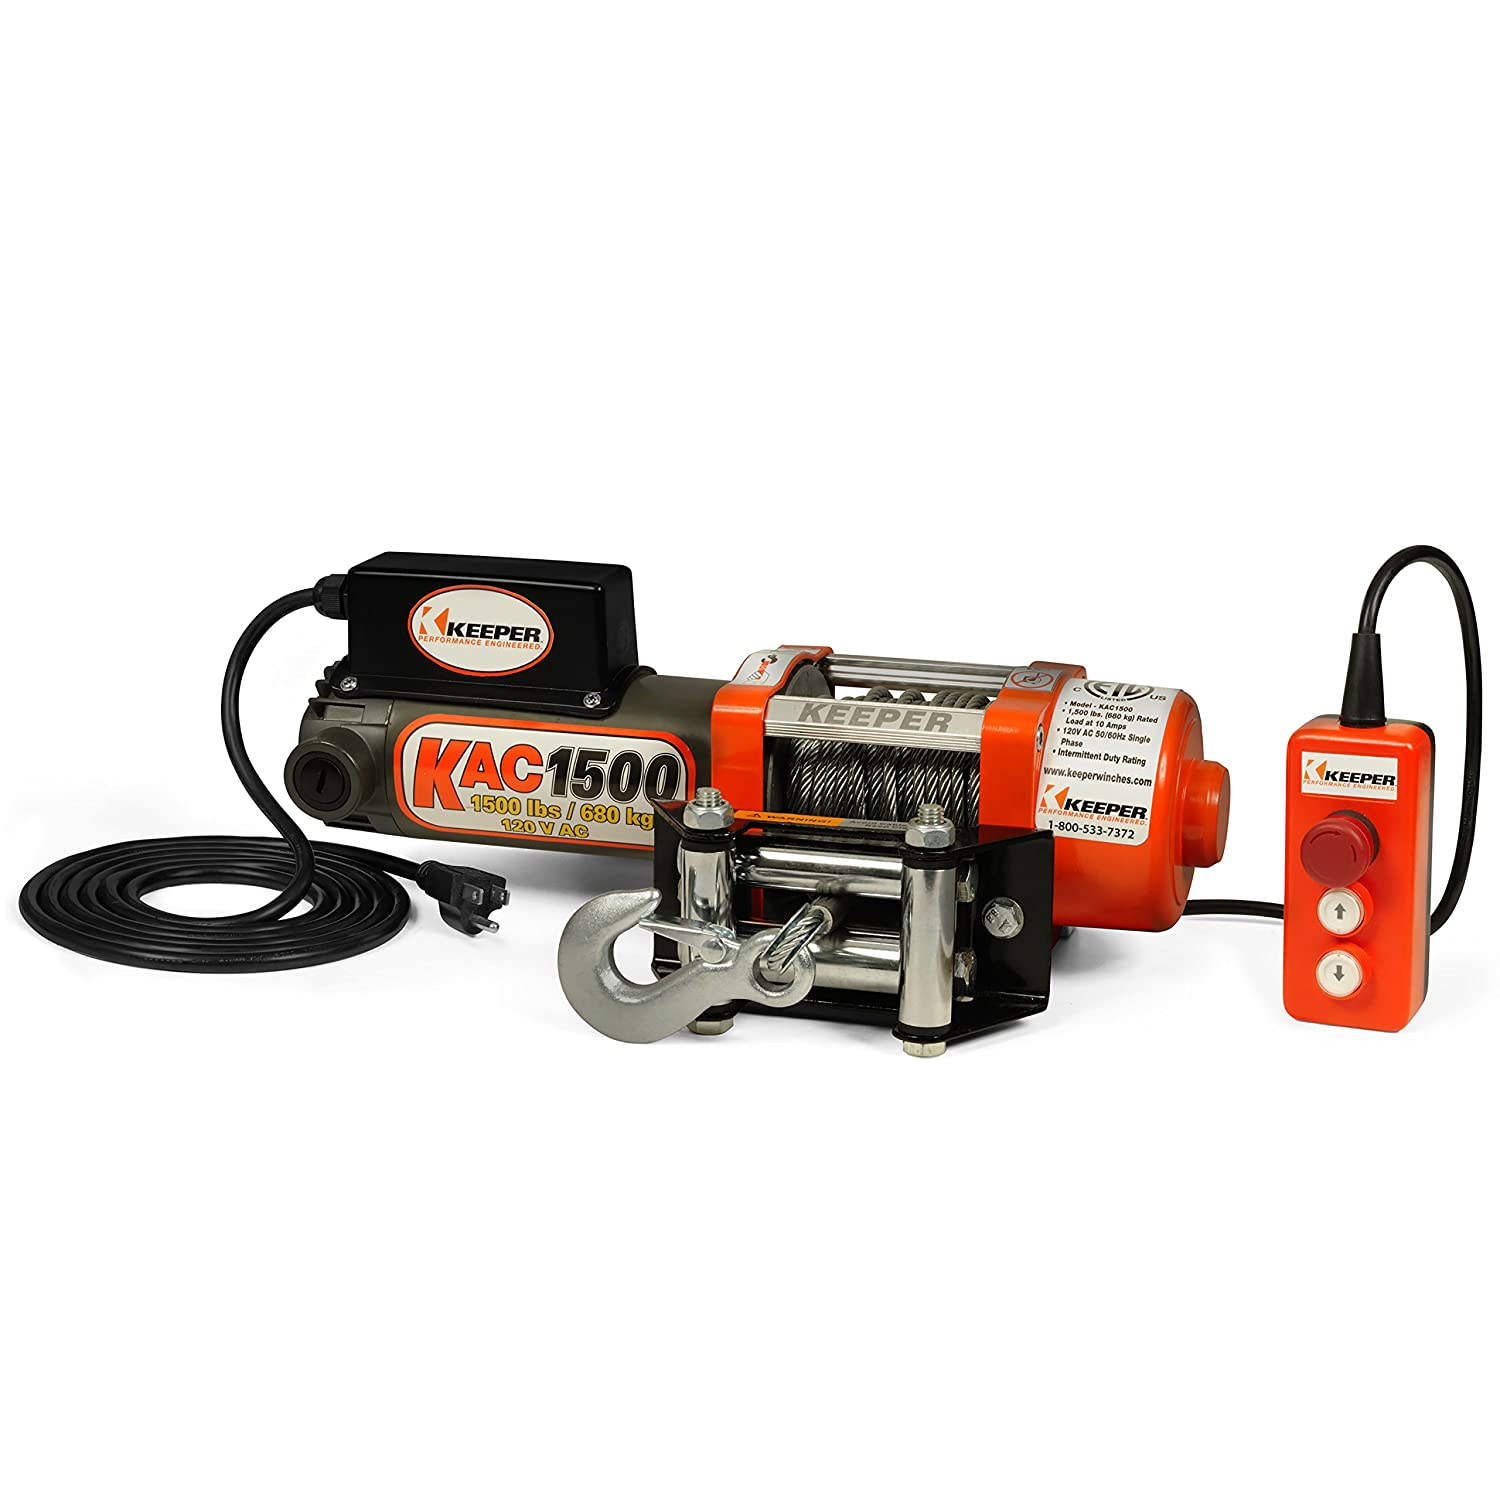 Amazon.com: Keeper KAC1500 110/120V AC Electric Winch with Hand Held Remote  - 1500 lb. Capacity: Automotive